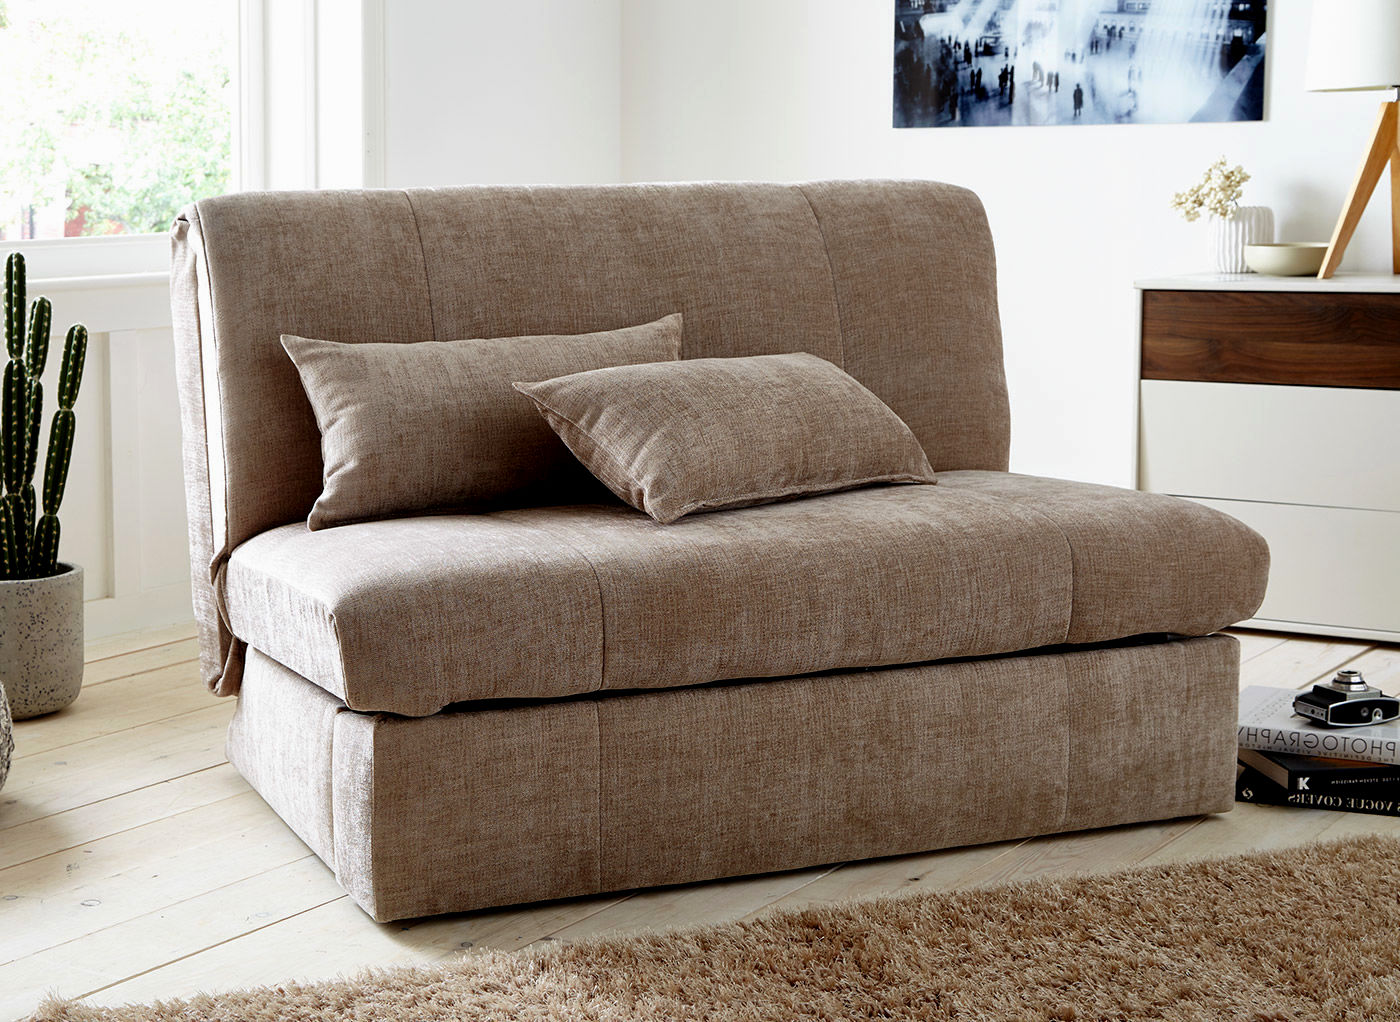 incredible world market sofa bed design-Excellent World Market sofa Bed Picture